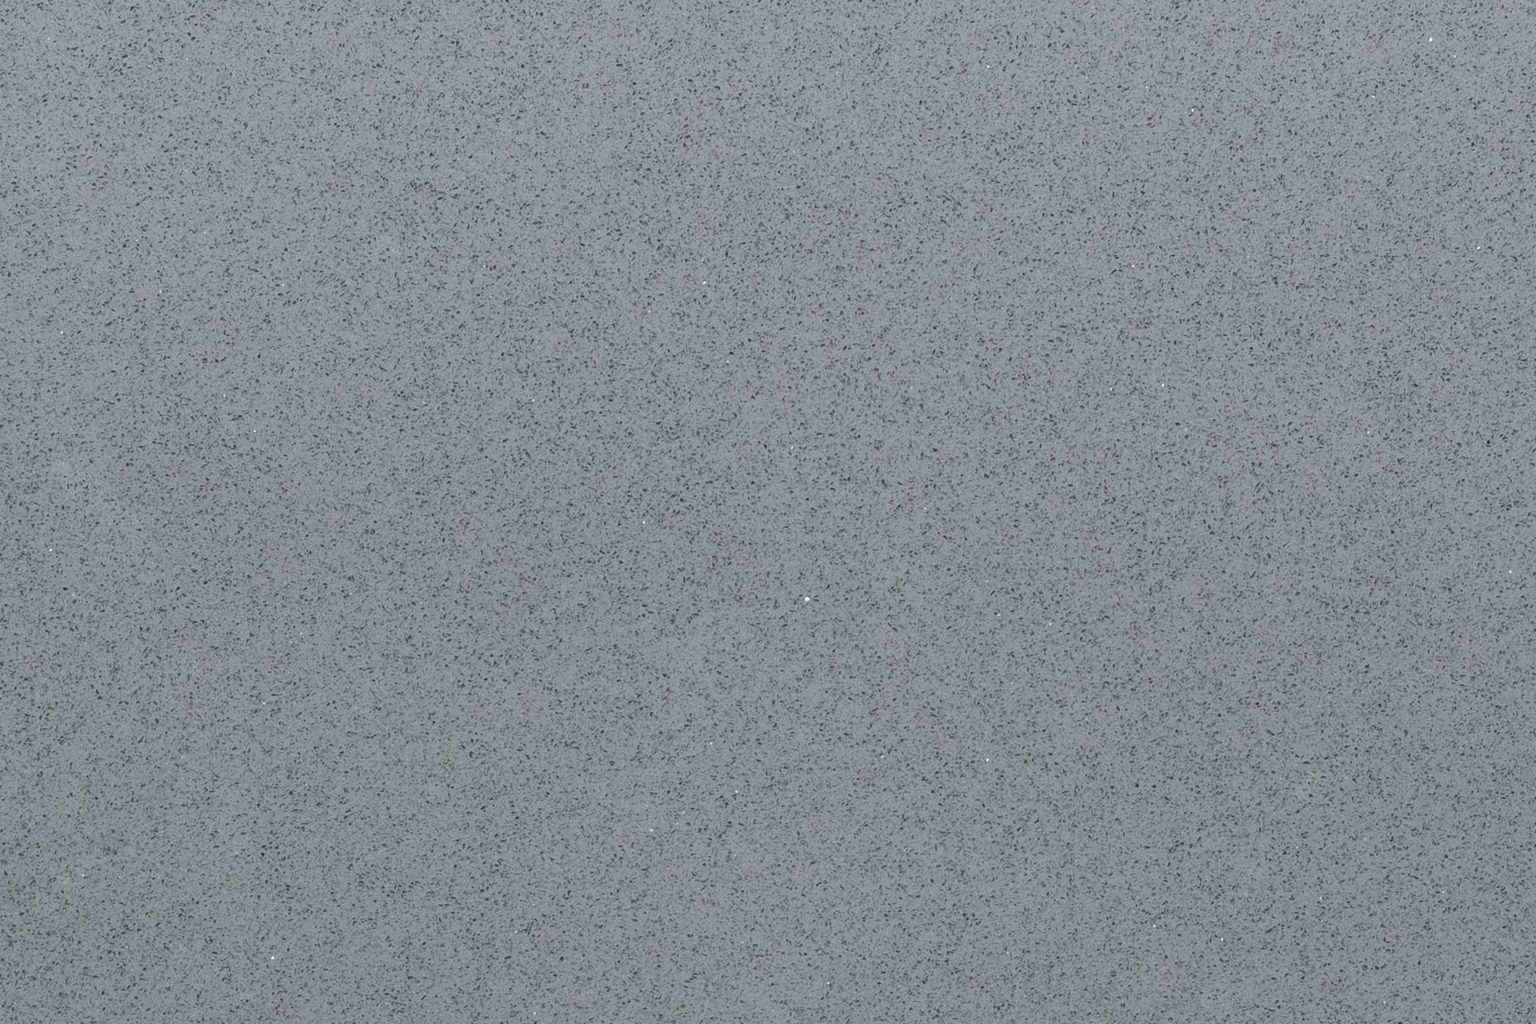 Grey sparkly worktops